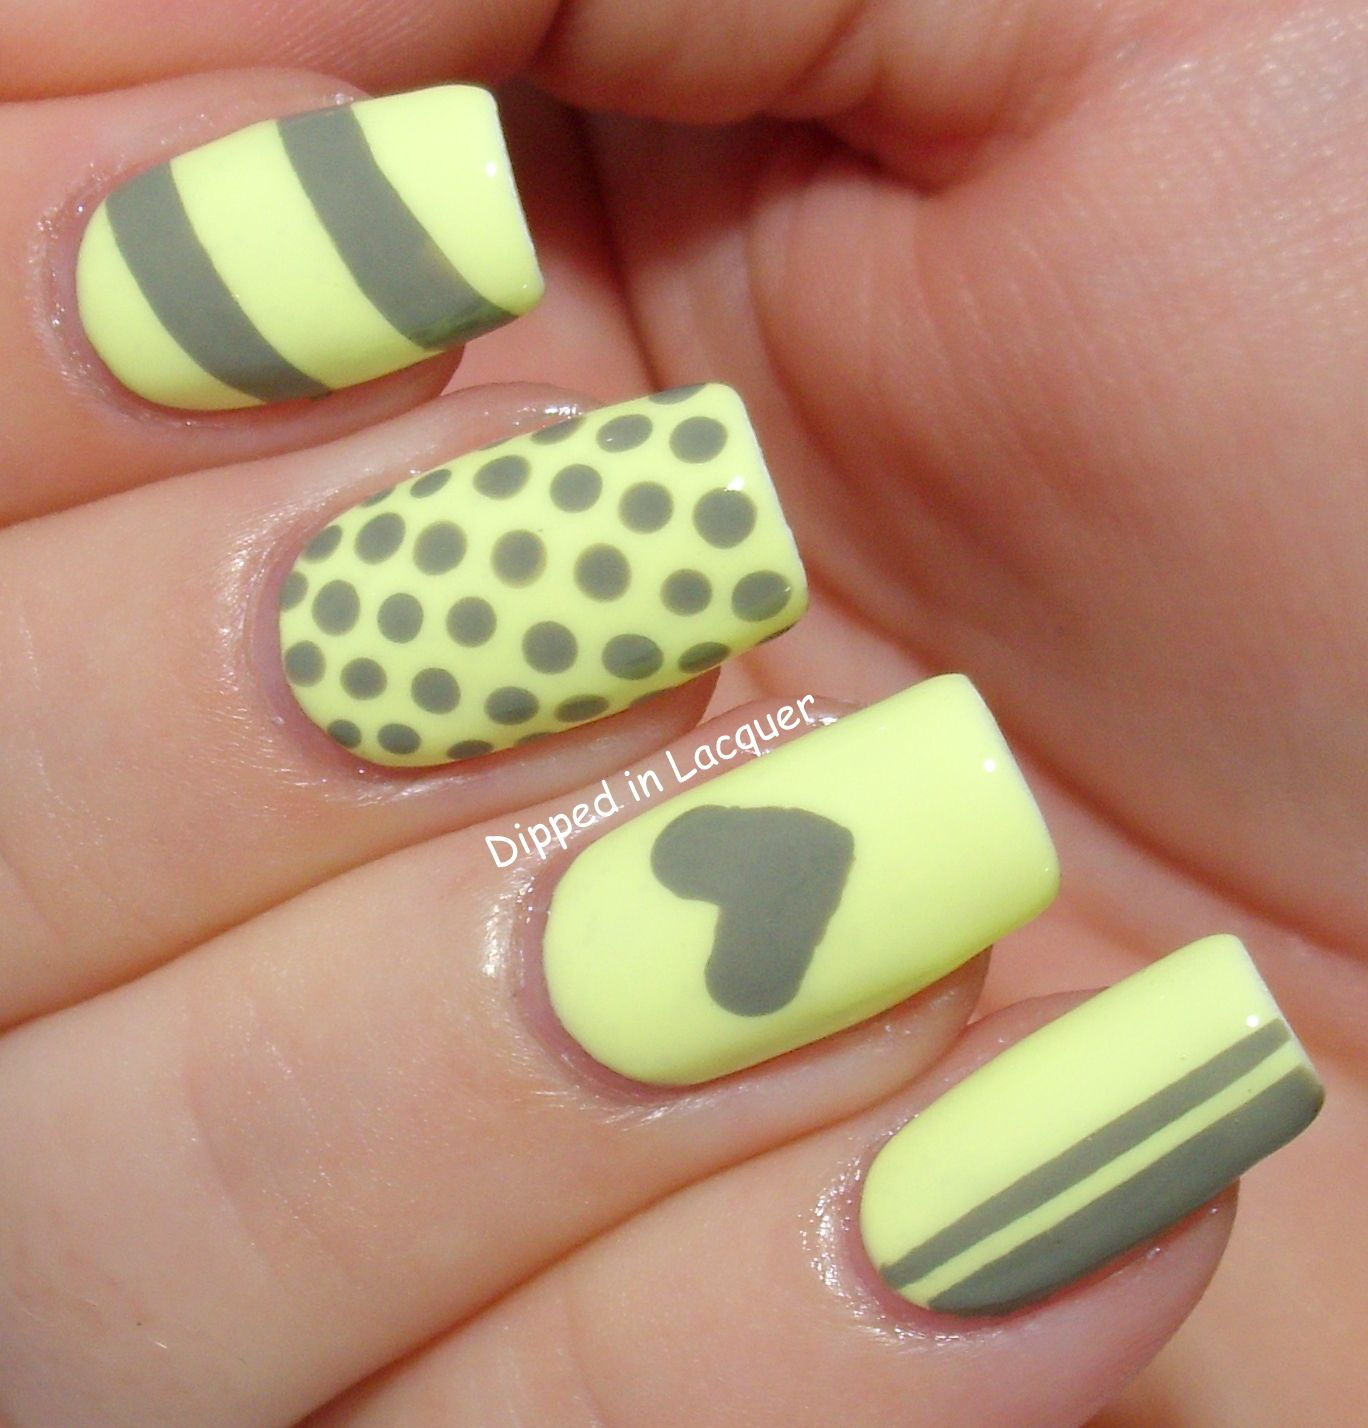 Nails Design Tumblr Nails Art Design Nails Design Youtube